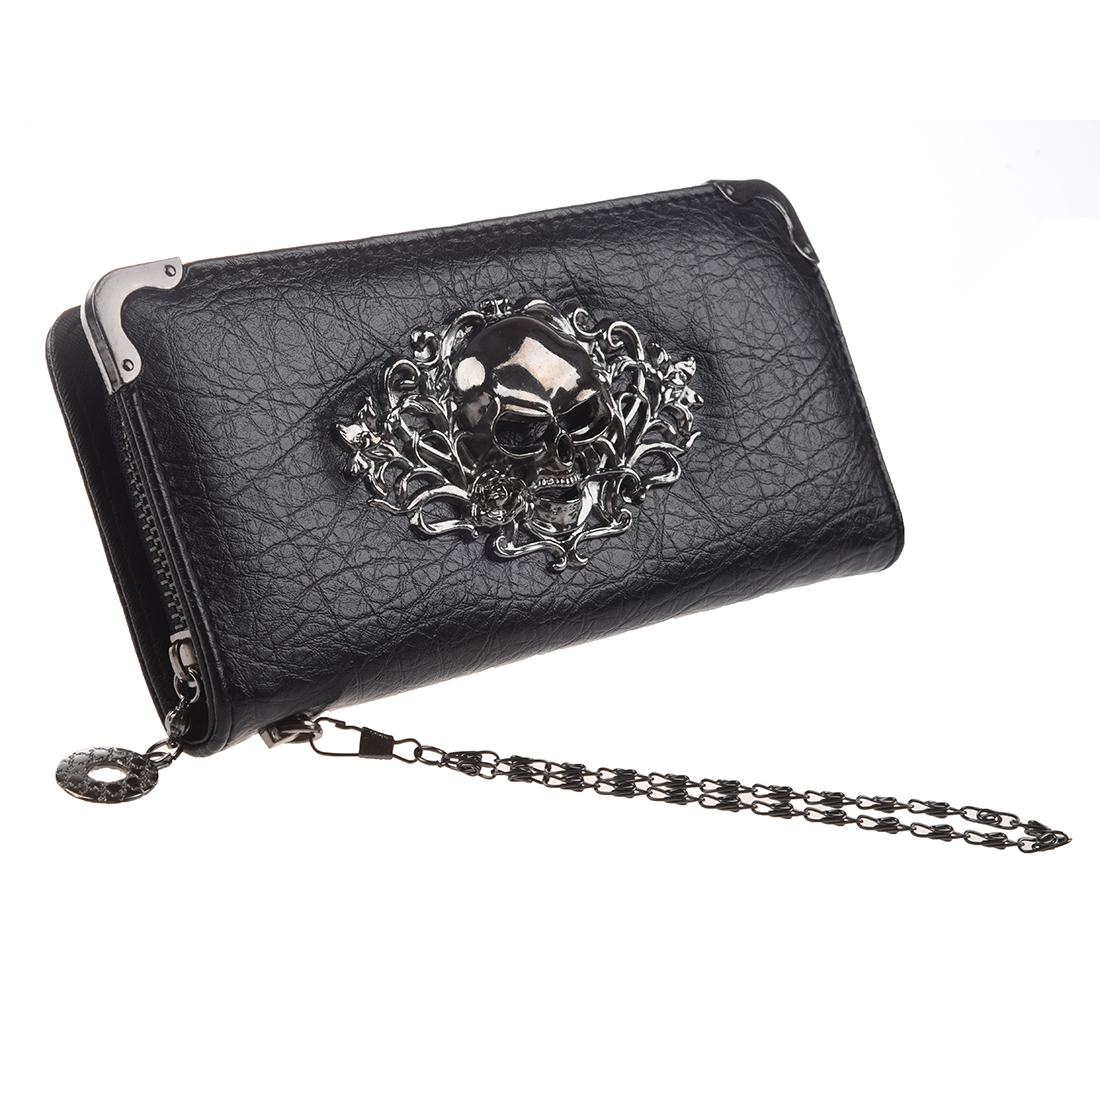 2018 New Hot Fashion And Good Quality PU Cool Retro Sliver Color Skull Long Wallet For Women Vintage Black Clutch Bag Purse